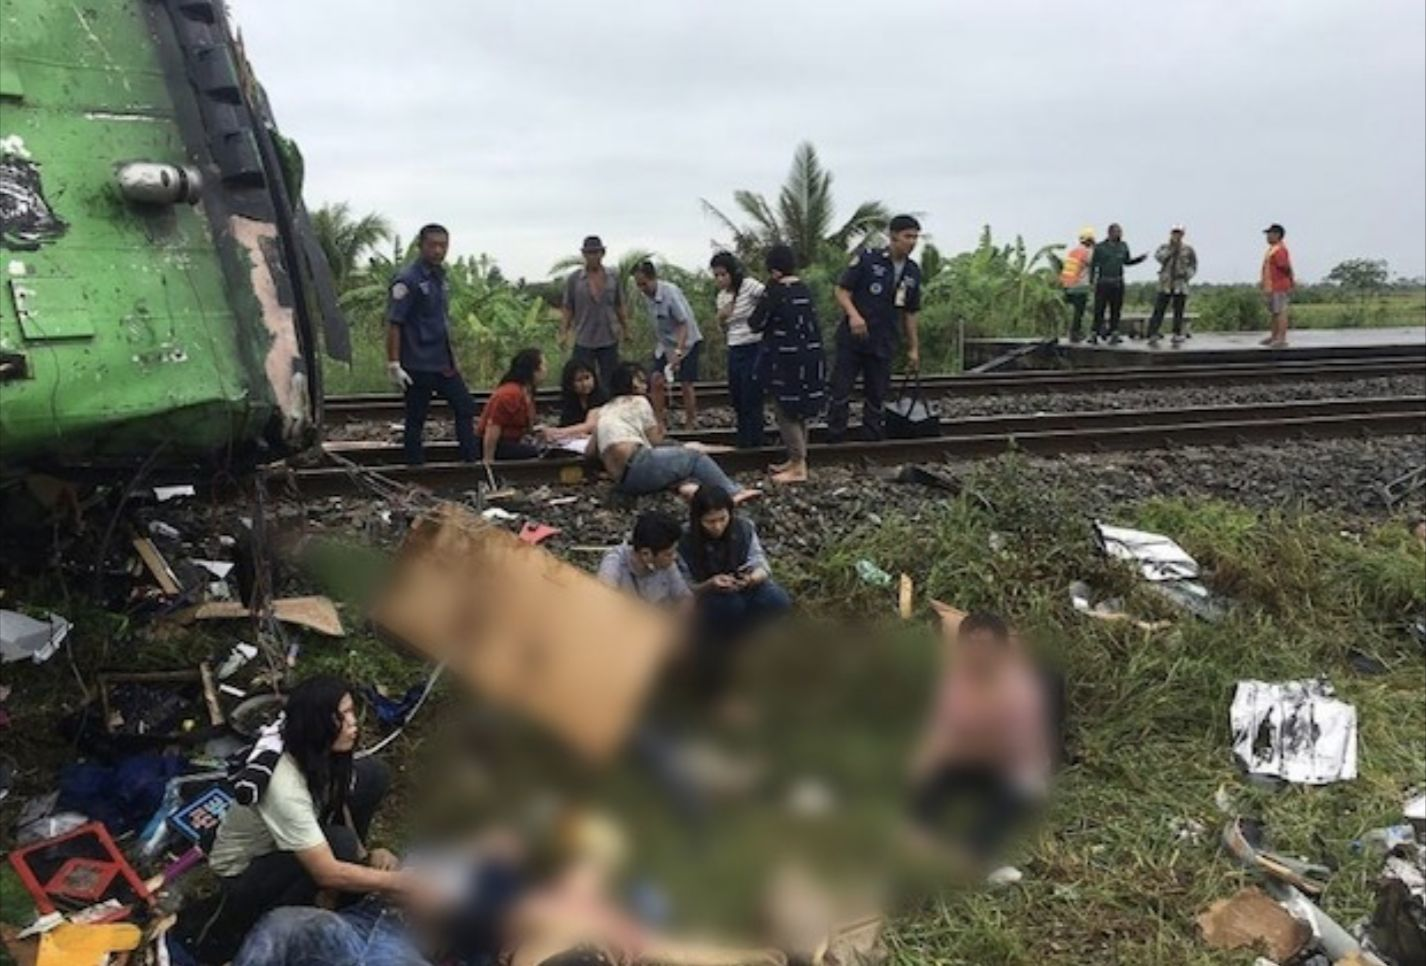 UPDATE: 18 dead, 44 injured, bus collides with train in Chachoengsao | News by Thaiger